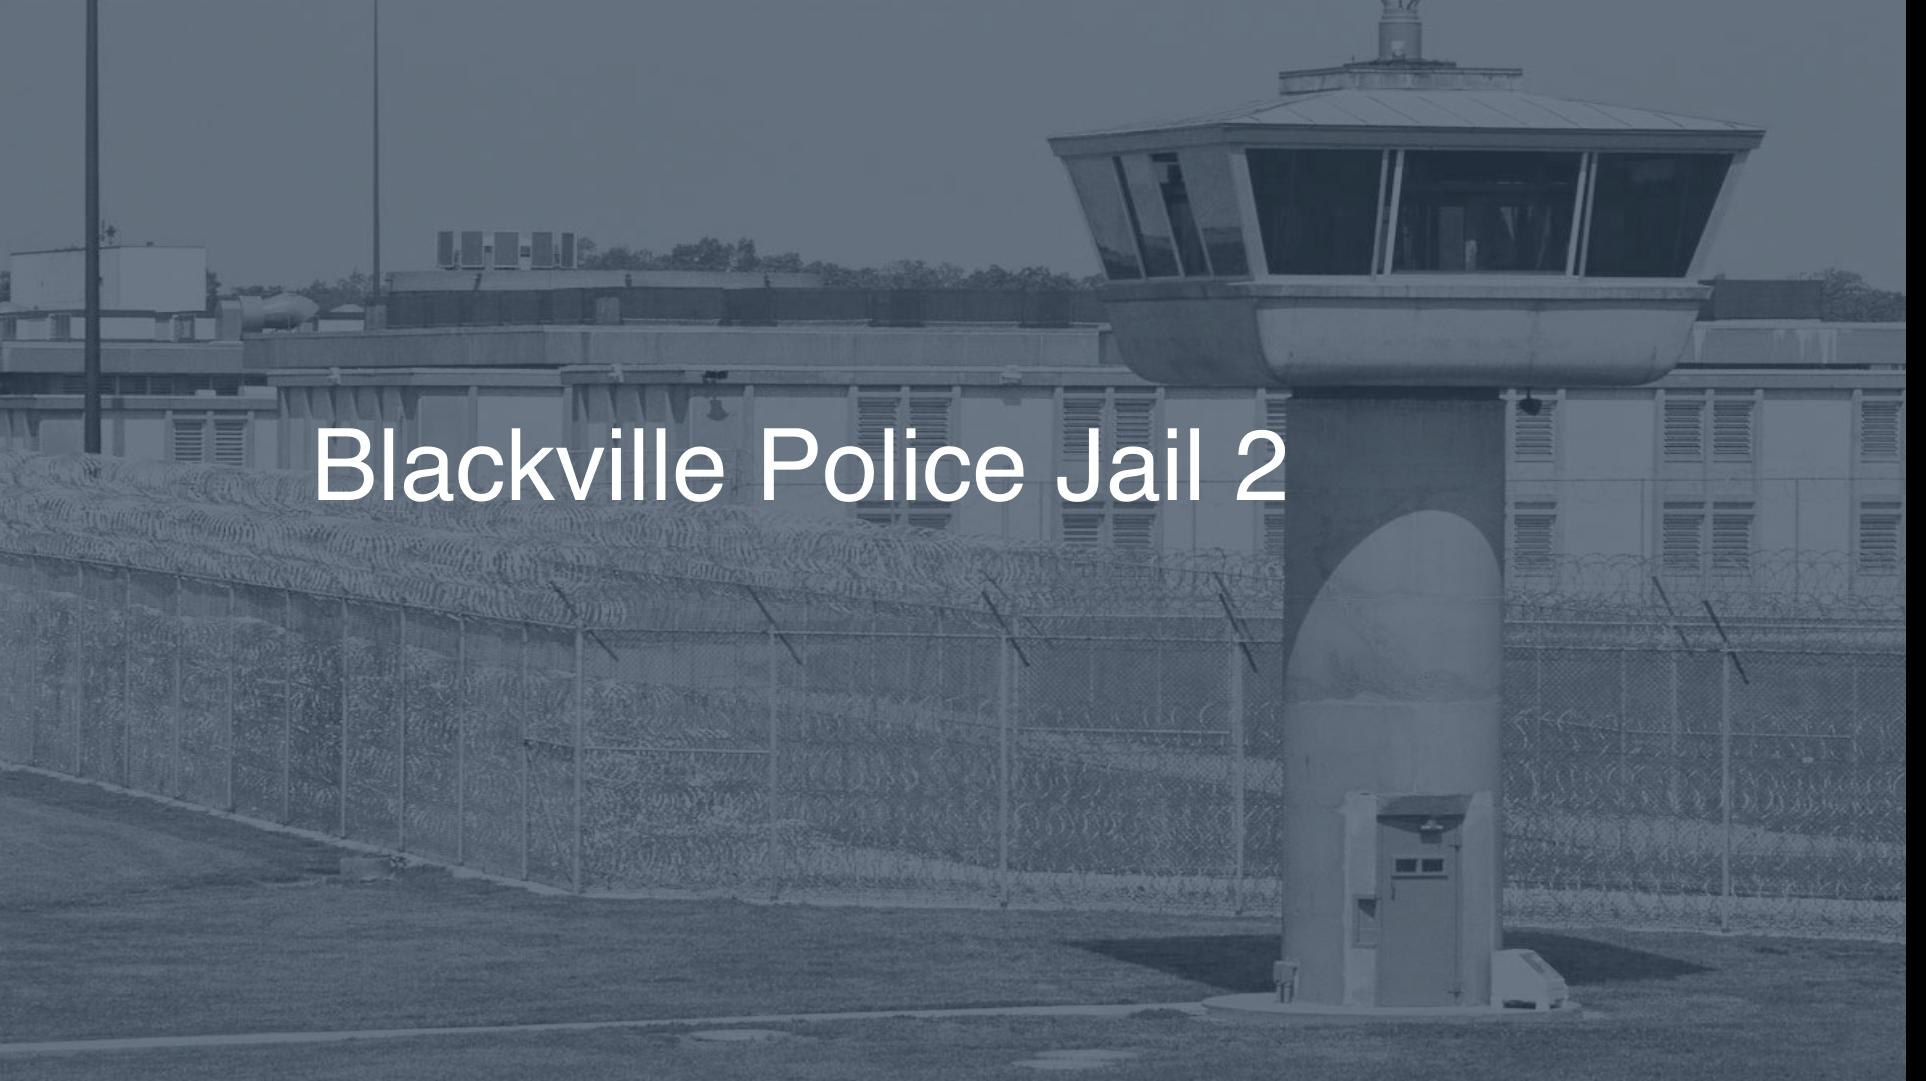 Blackville Police Jail correctional facility picture